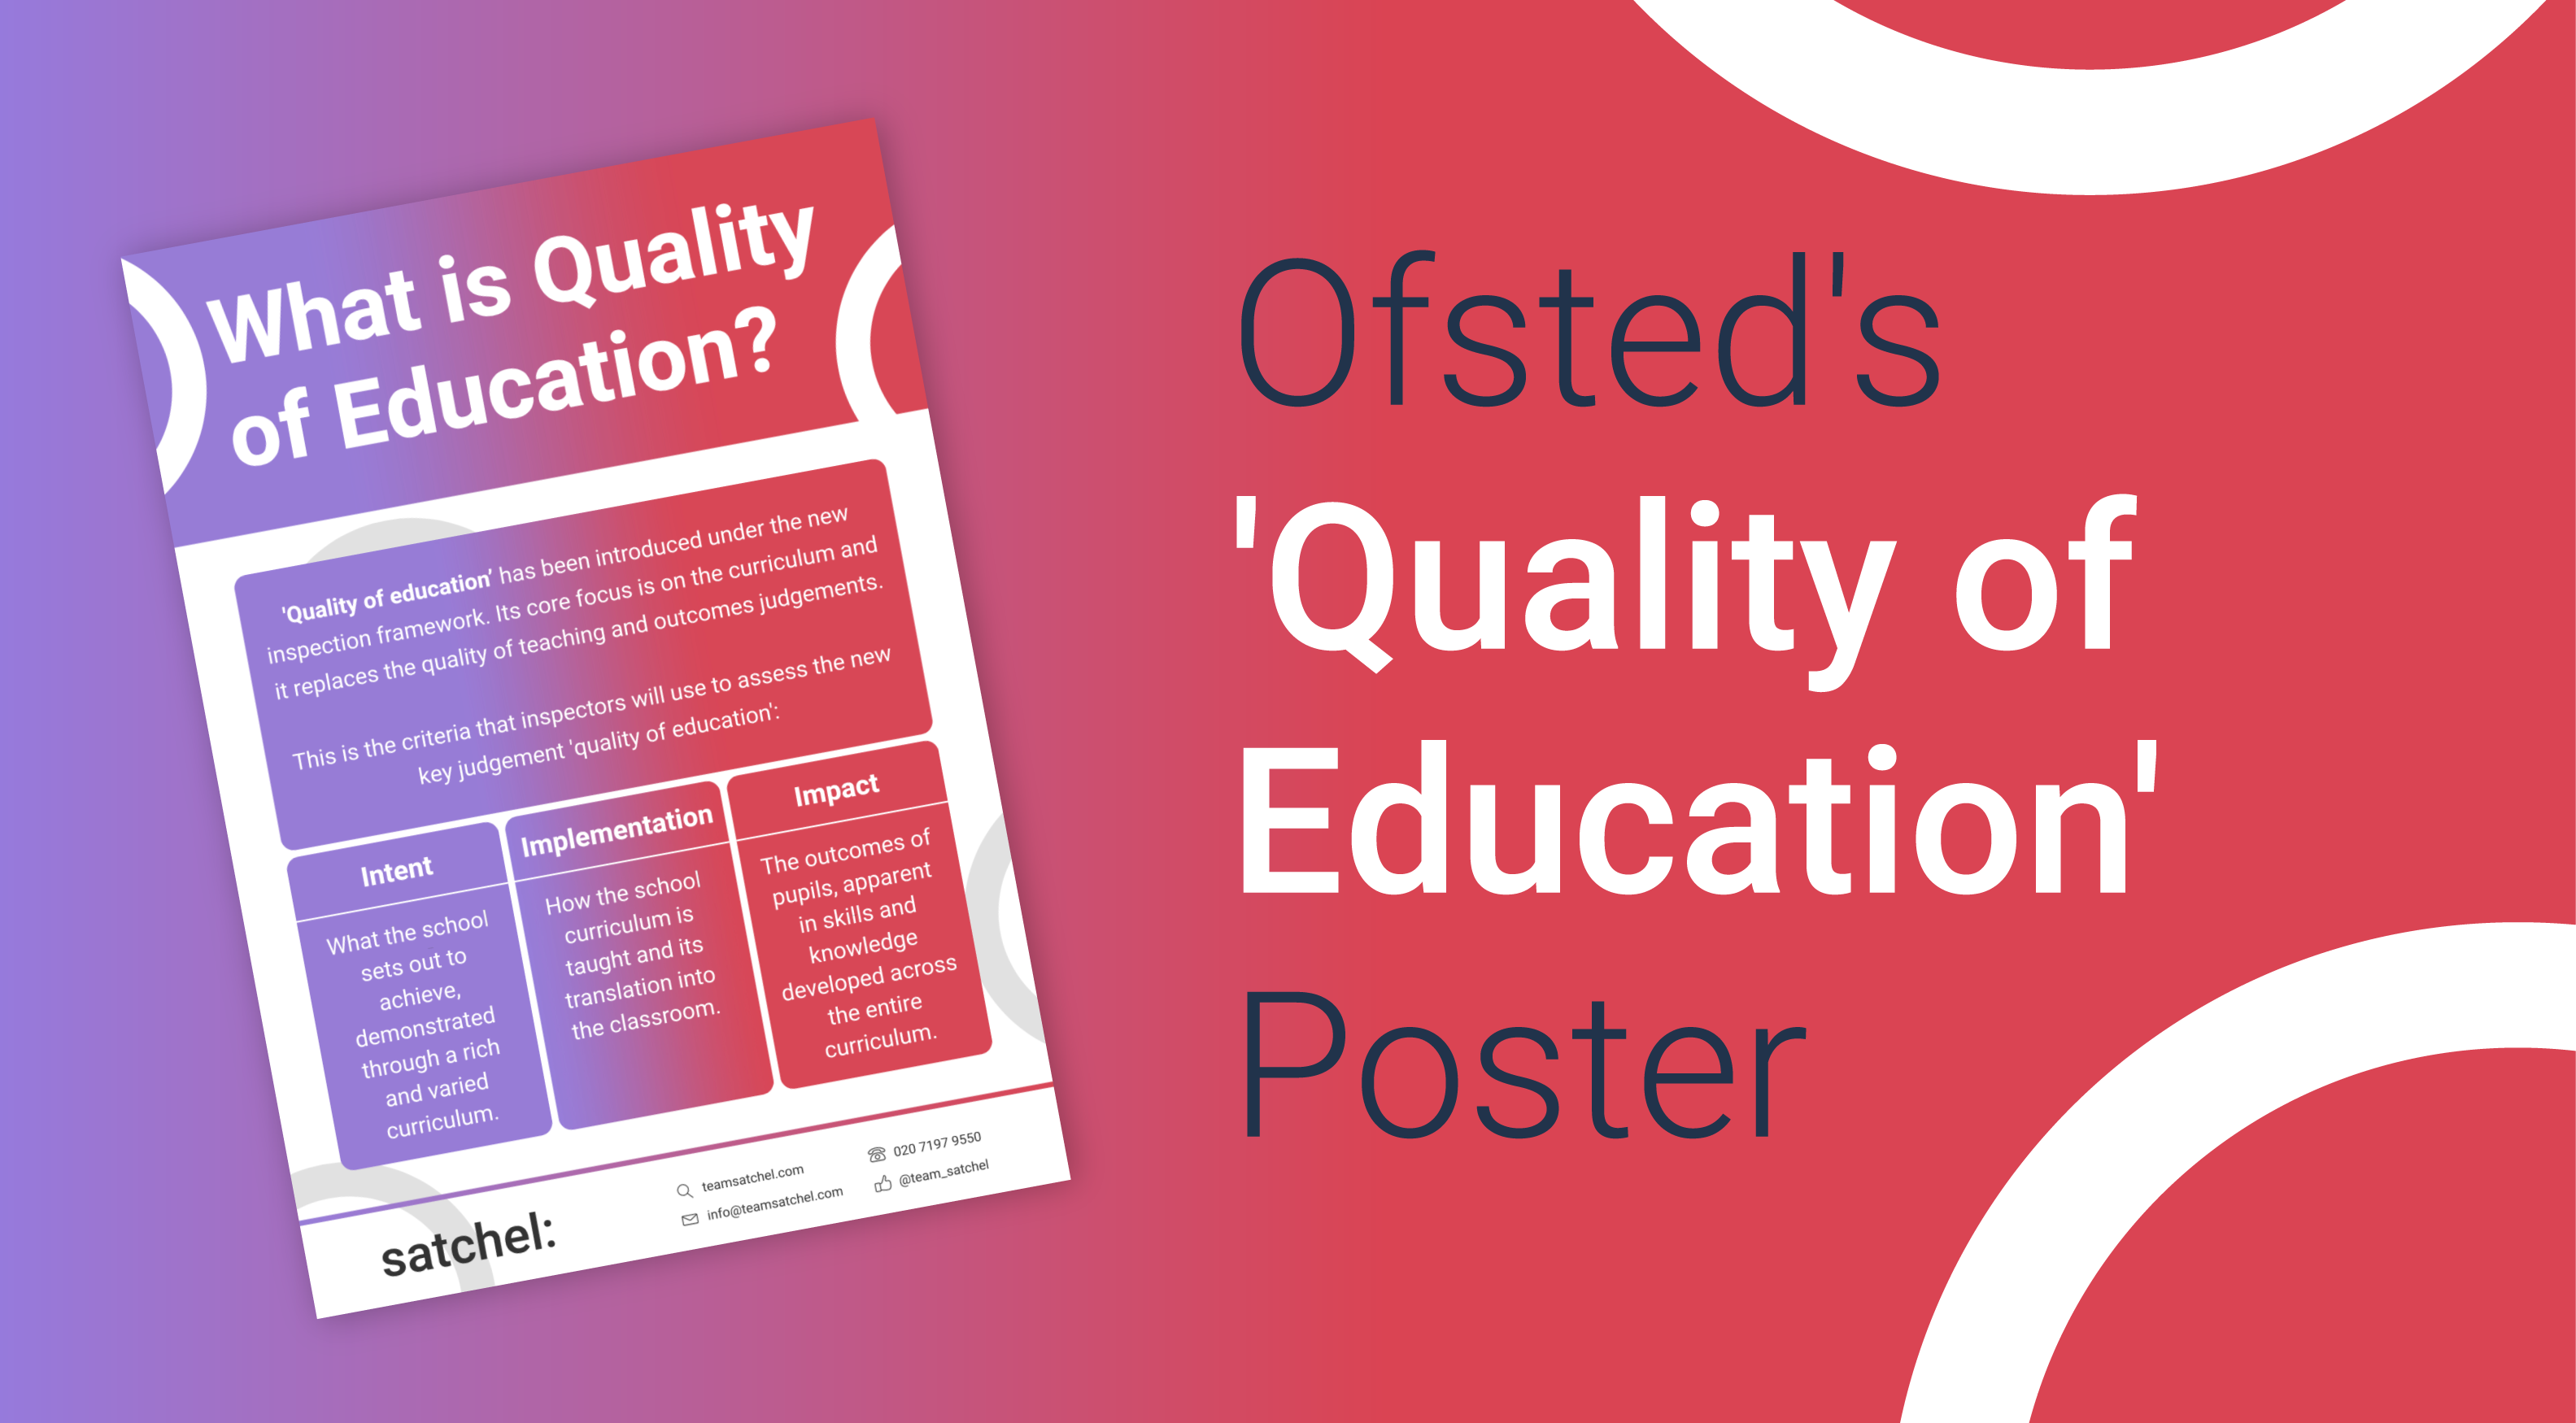 Ofsted Quality Poster